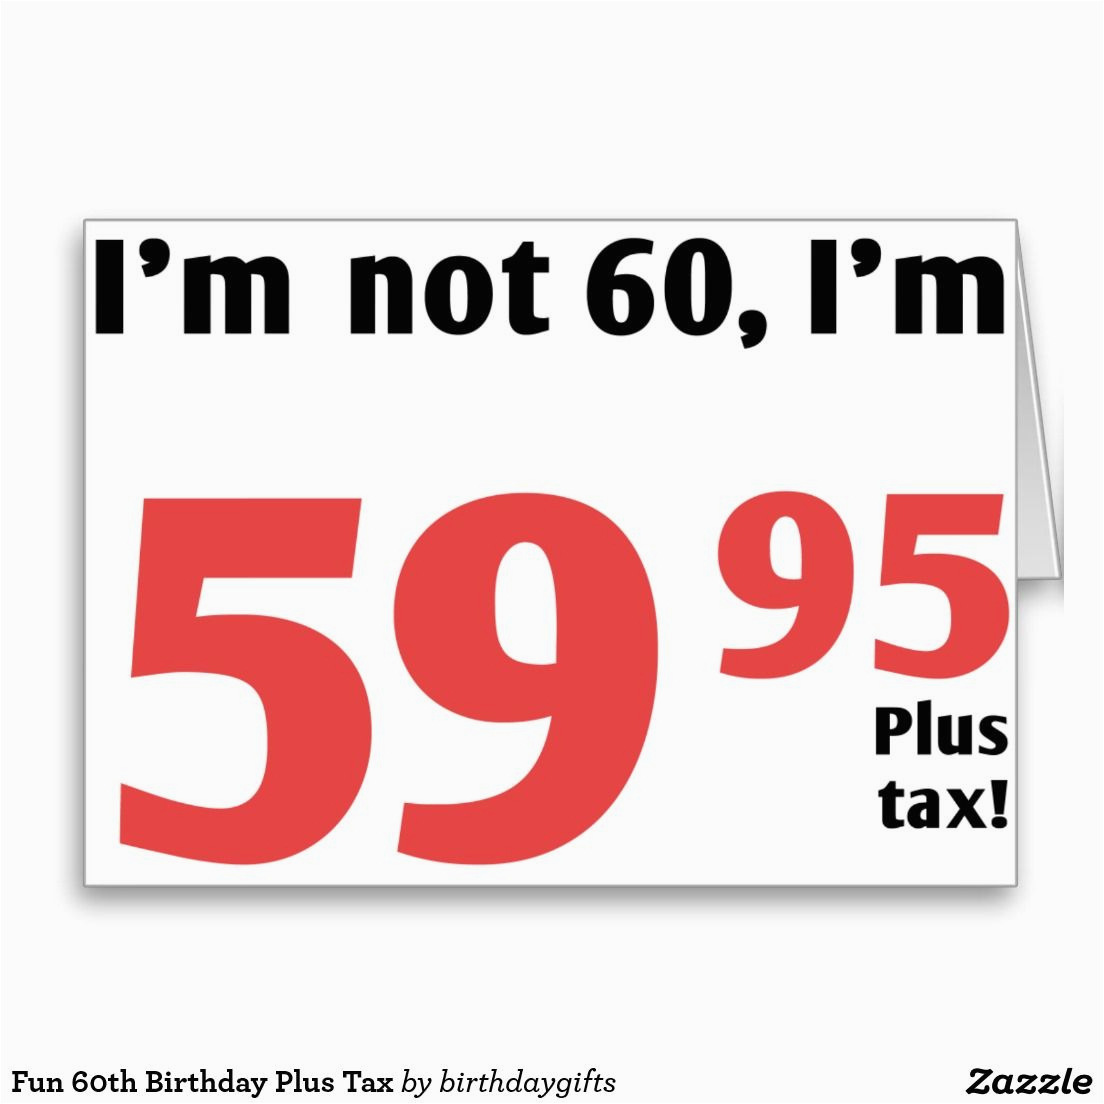 Free E Cards 60th Birthday Funny Fun Plus Tax Card Birthdays